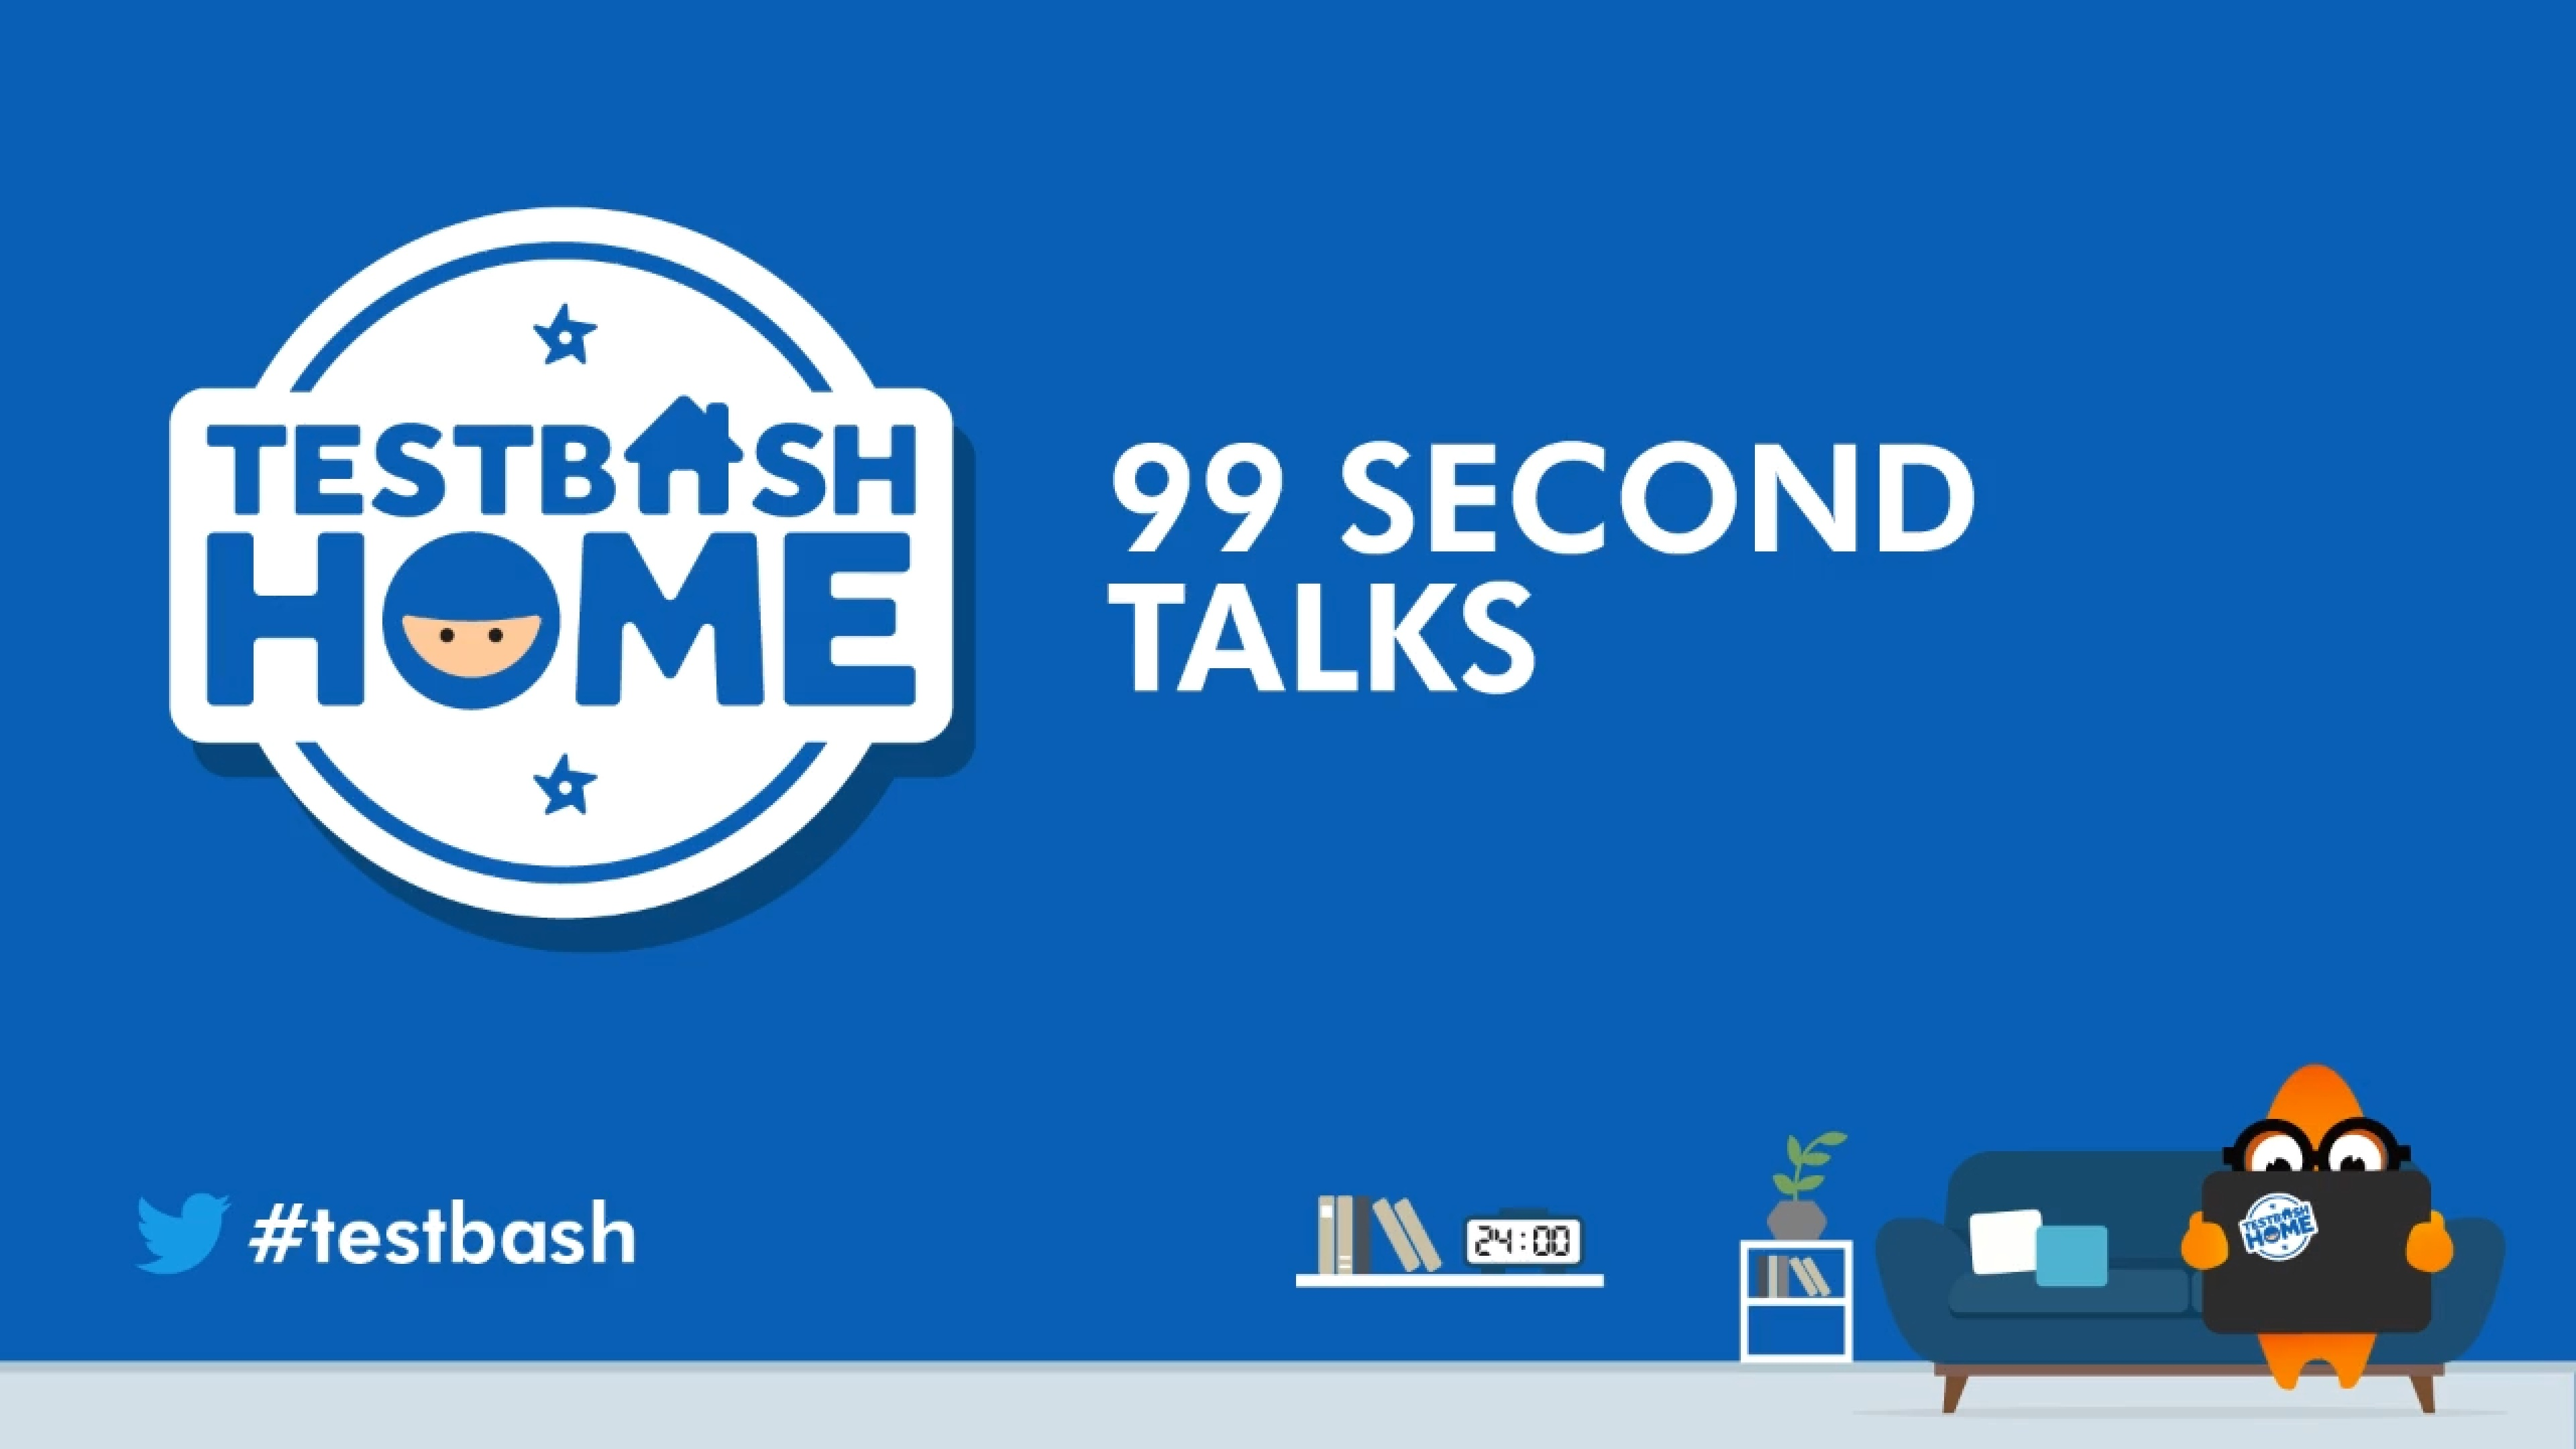 TestBash Home Part 6 - 99 Second Talks